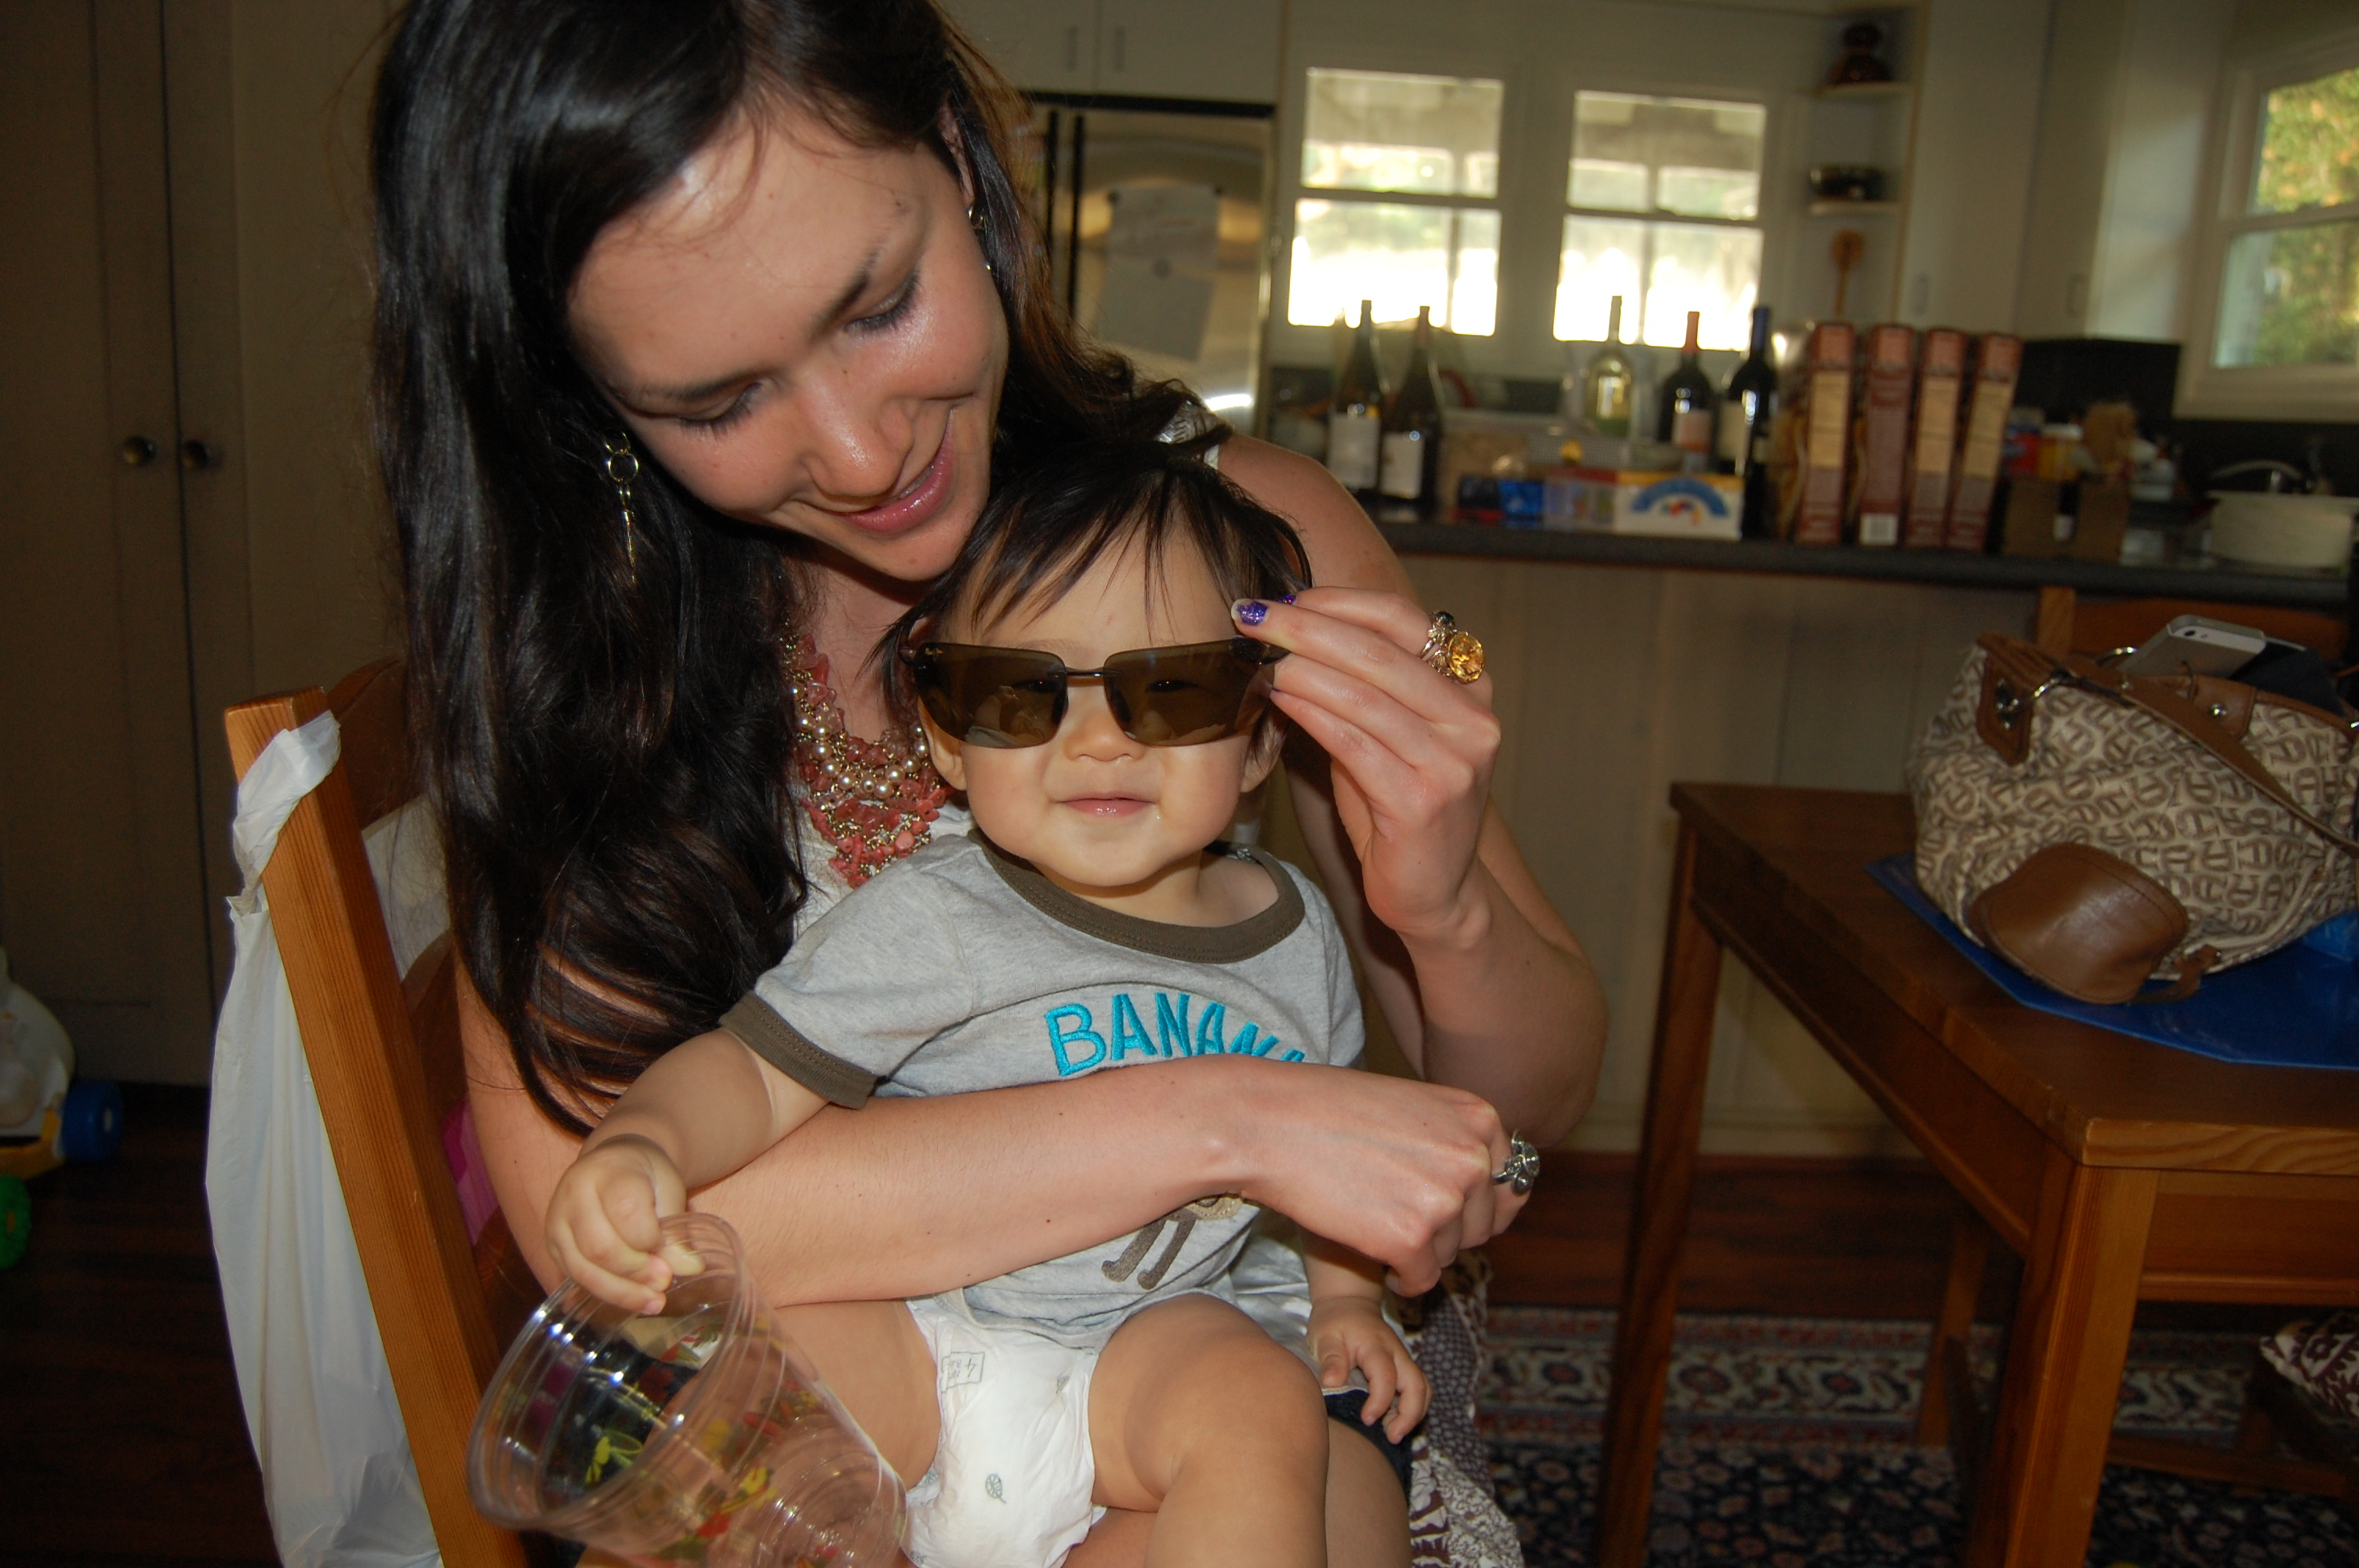 2012: He needs sunglasses to shield his eyes from our bright future as pals!